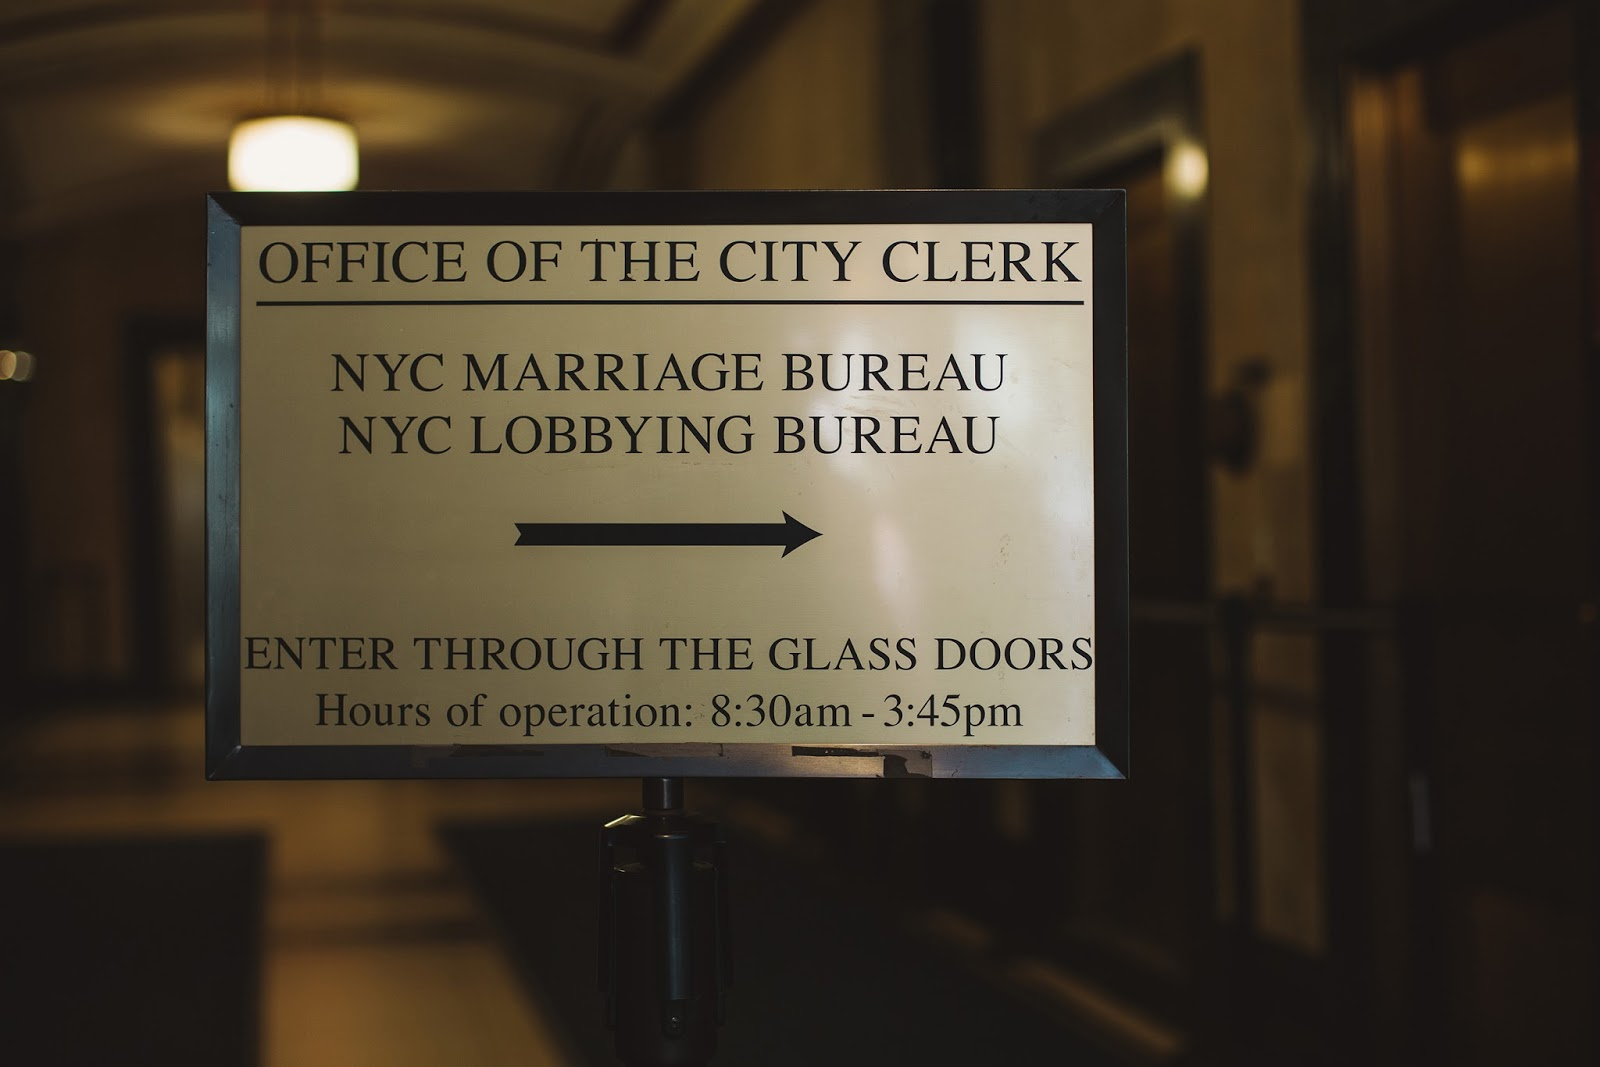 nyc marriage bureau